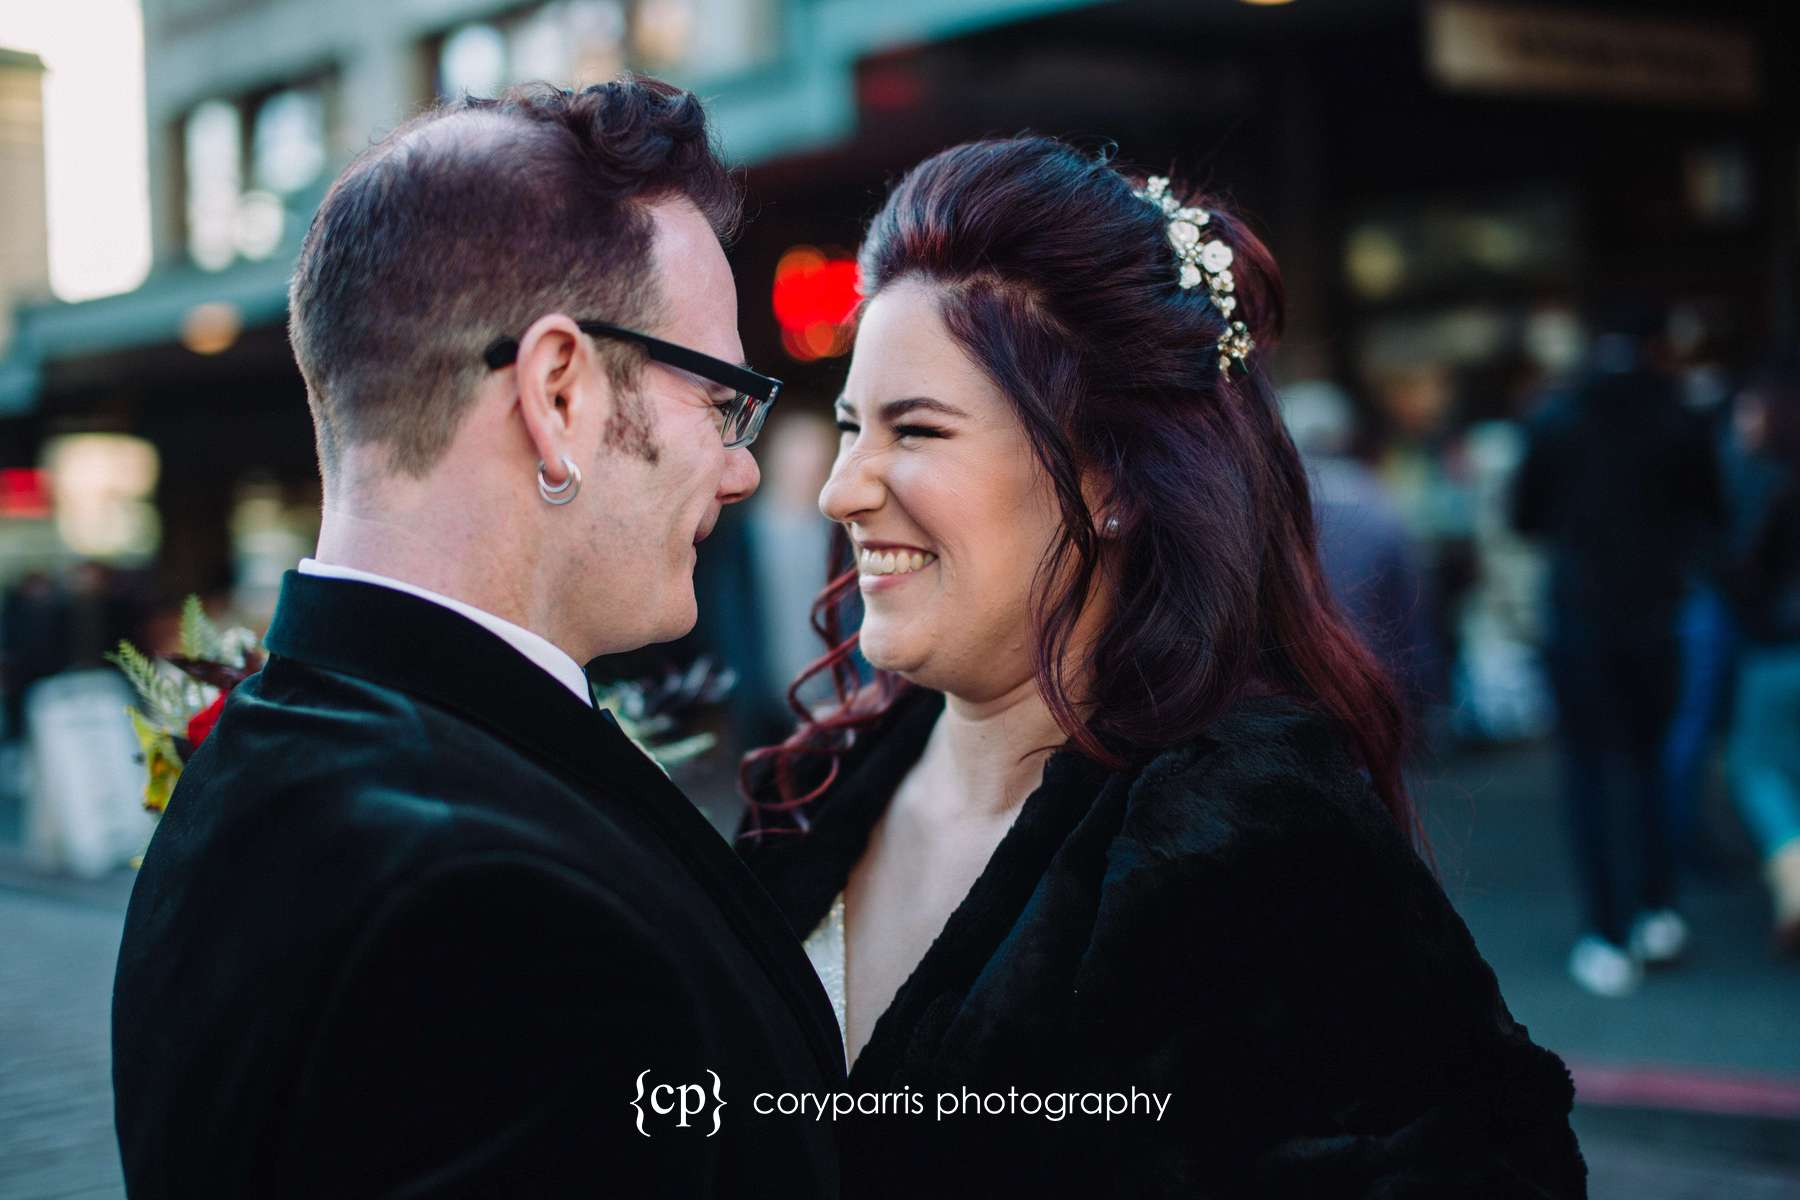 Great expression on the bride before Seattle wedding